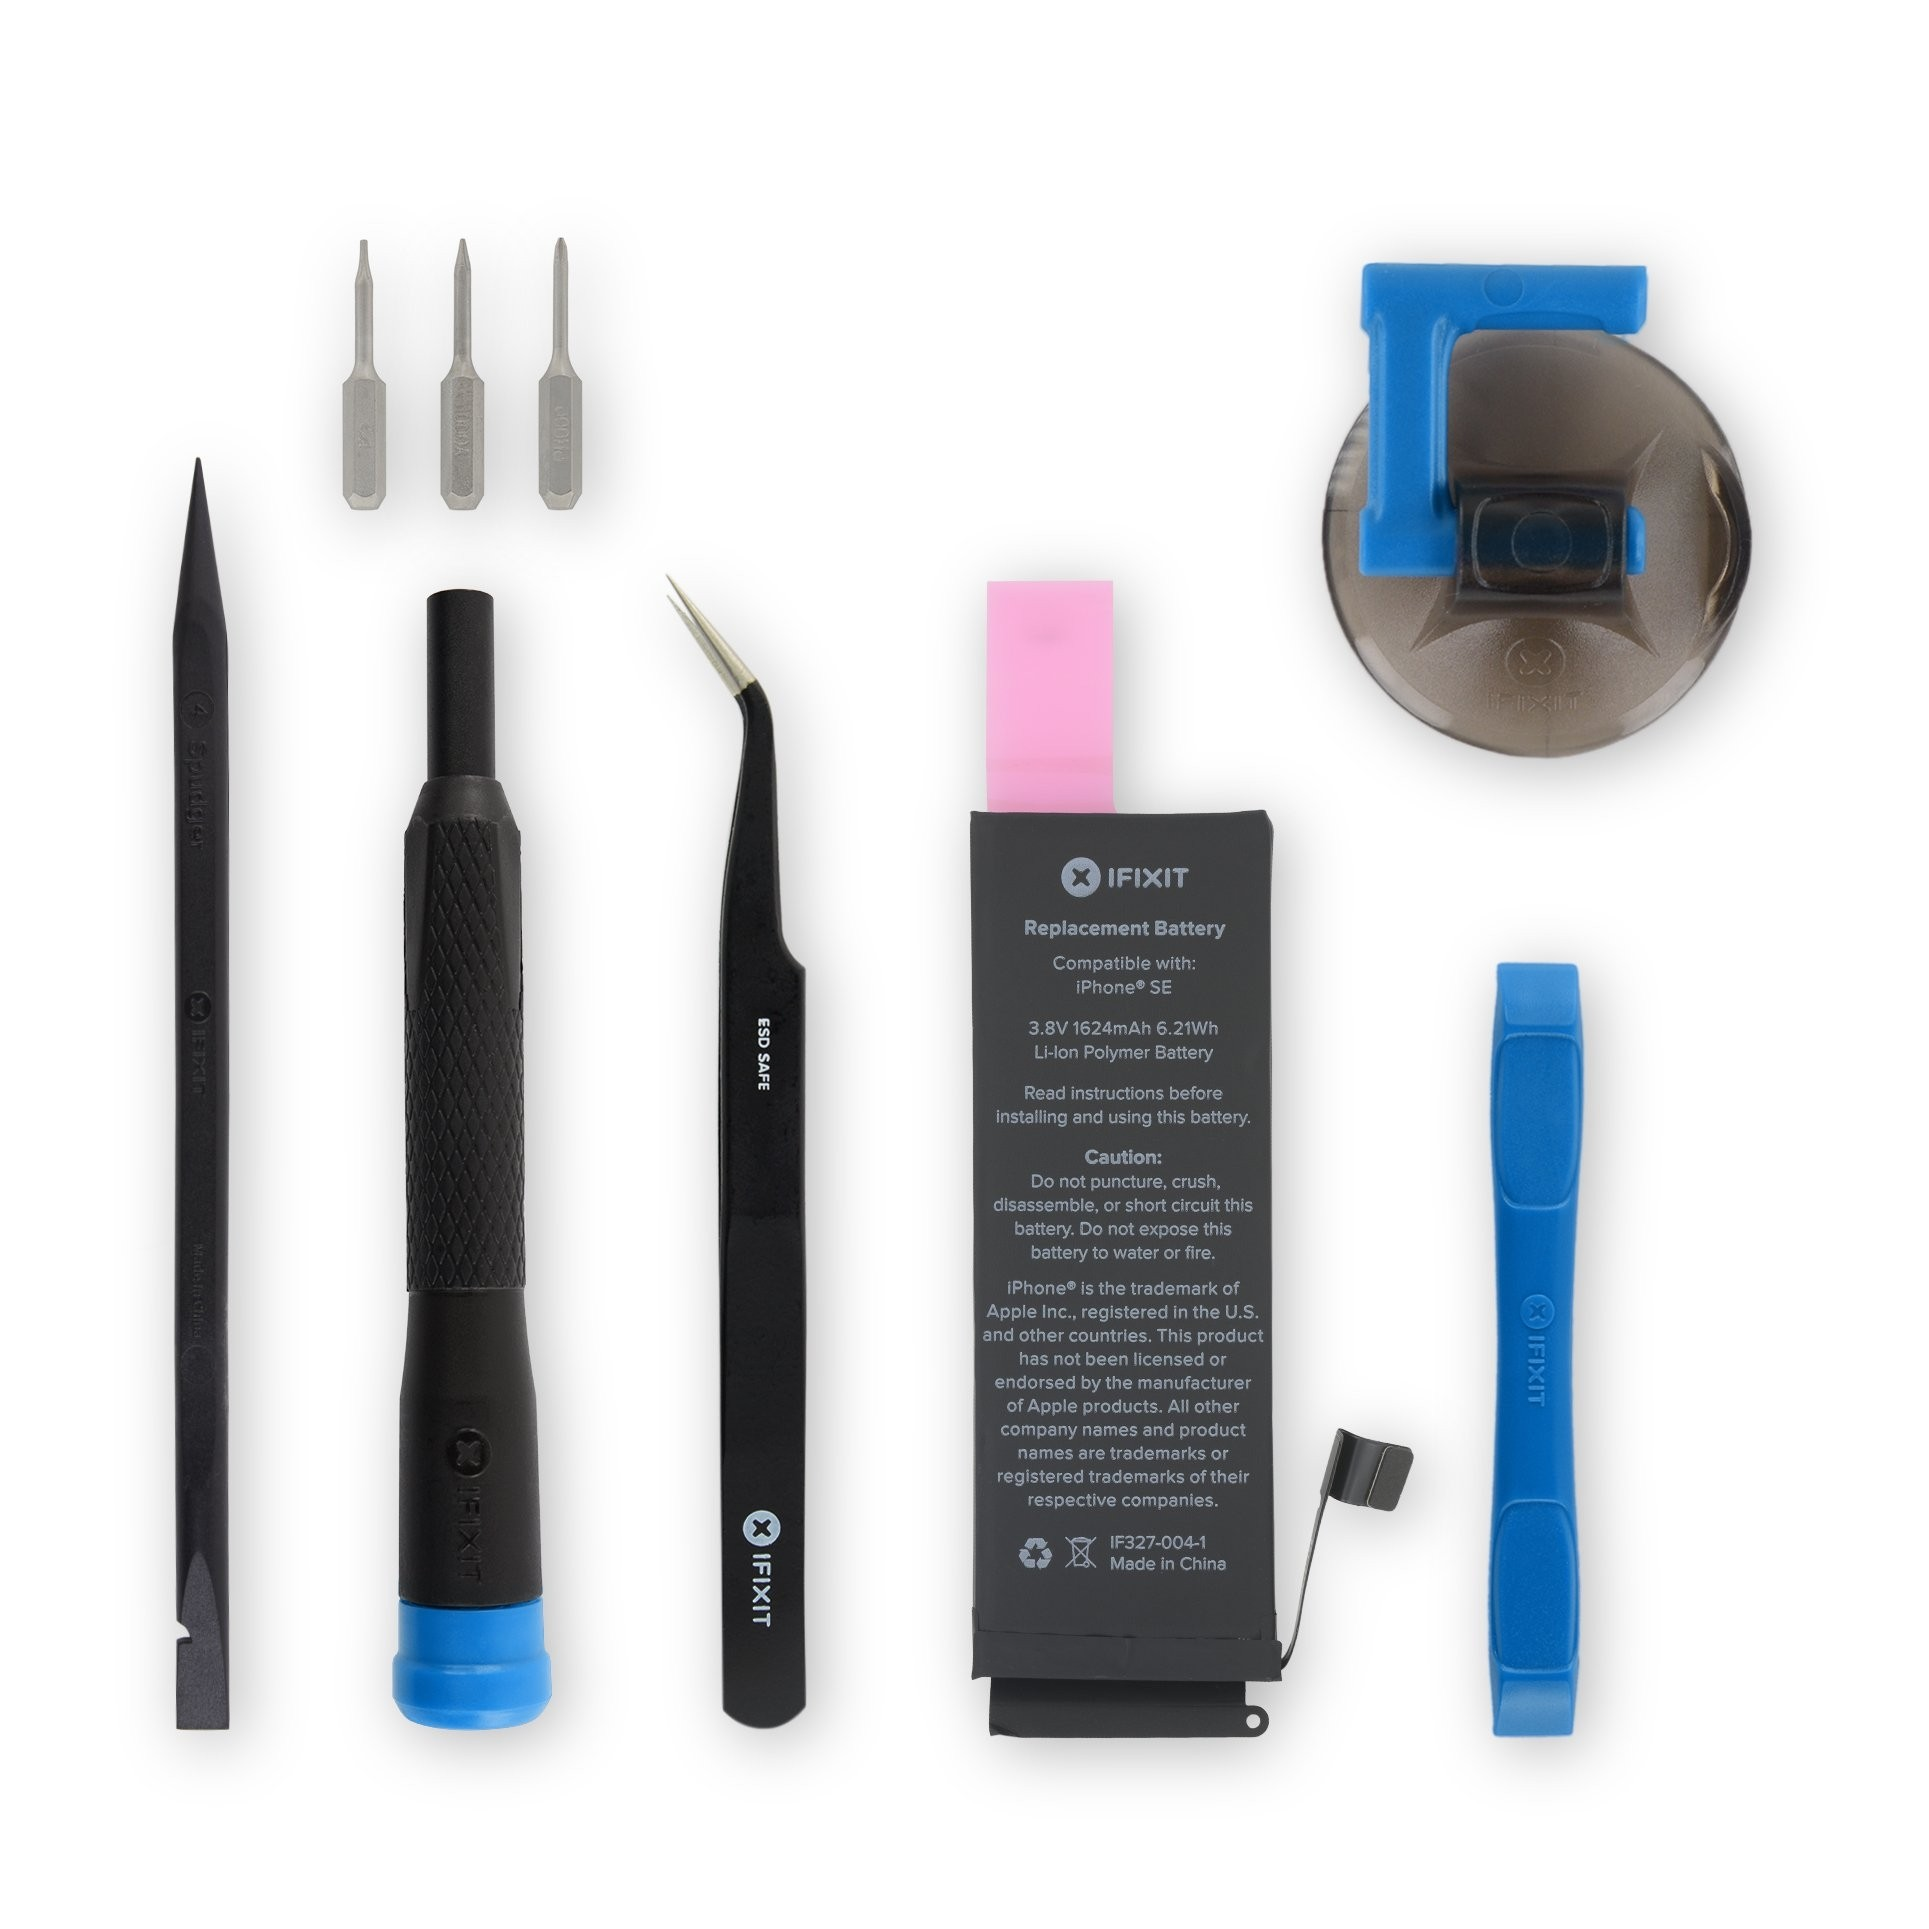 iFixit iPhone SE Replacement Battery - Fix Kit v.3 with Adhesive, IF327-004-7